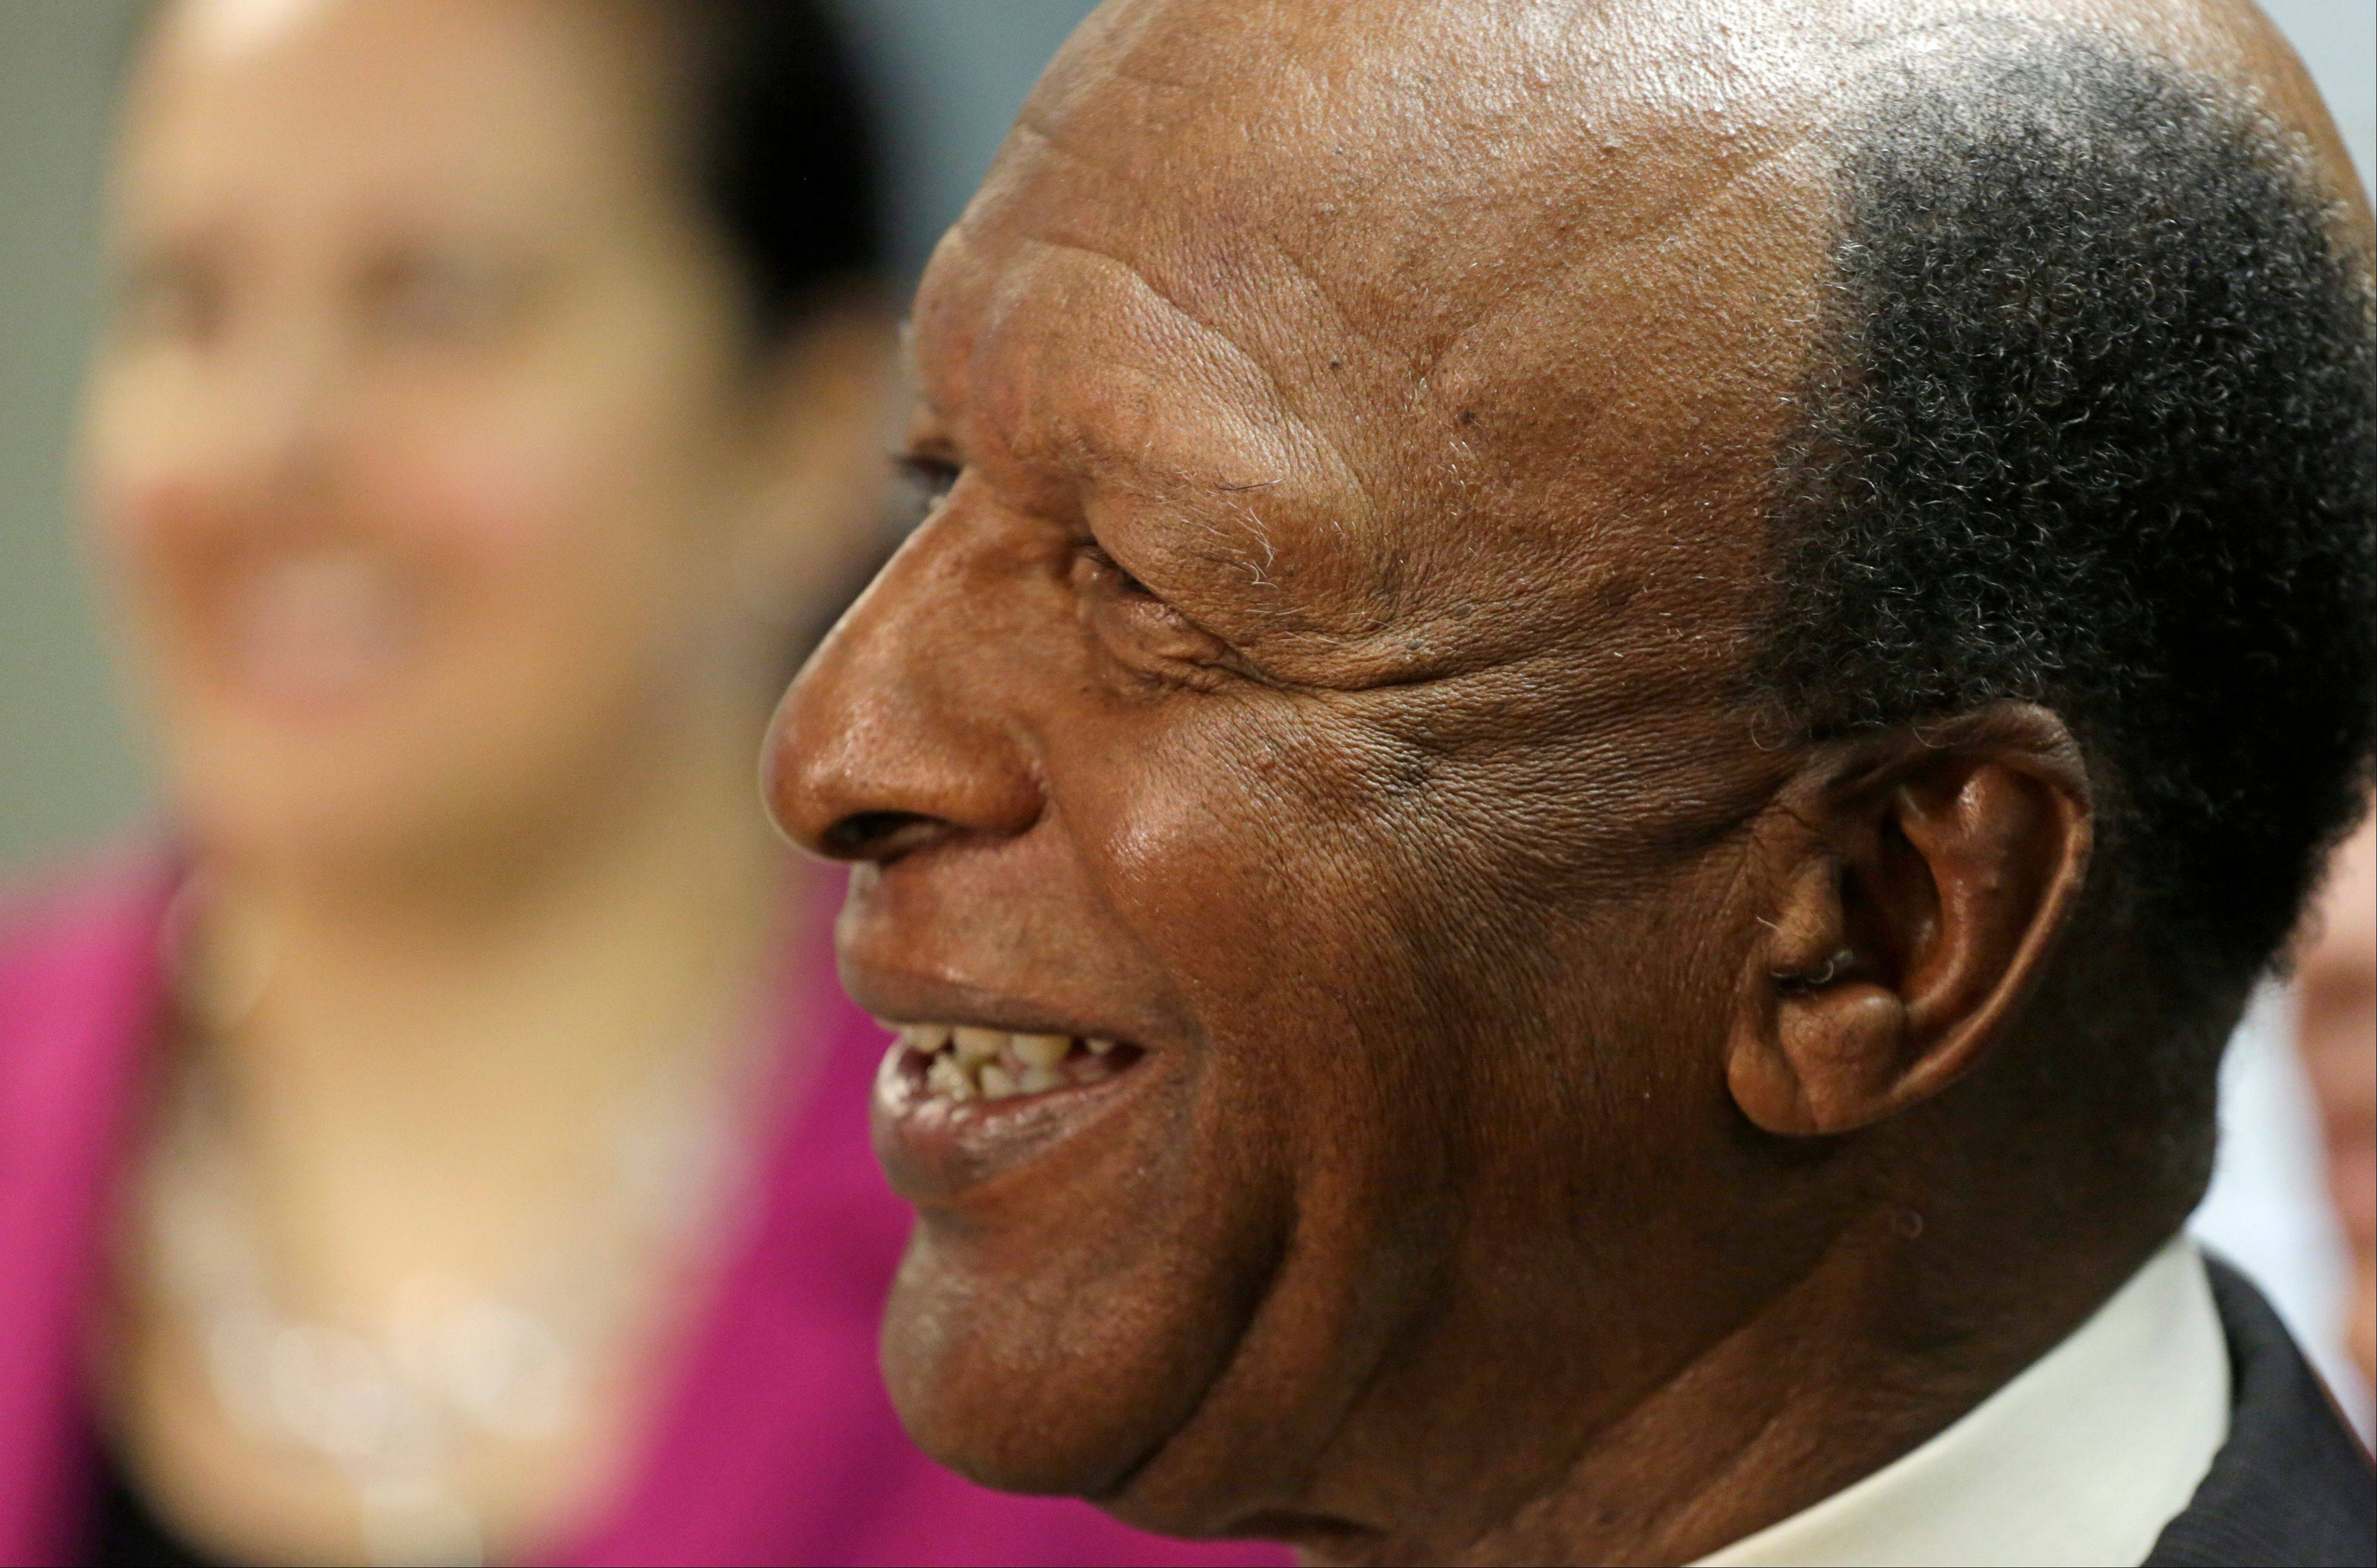 Illinois Secretary of State Jesse White announces his bid for a fifth term in office on Thursday in Chicago. So far, White faces no opponents.